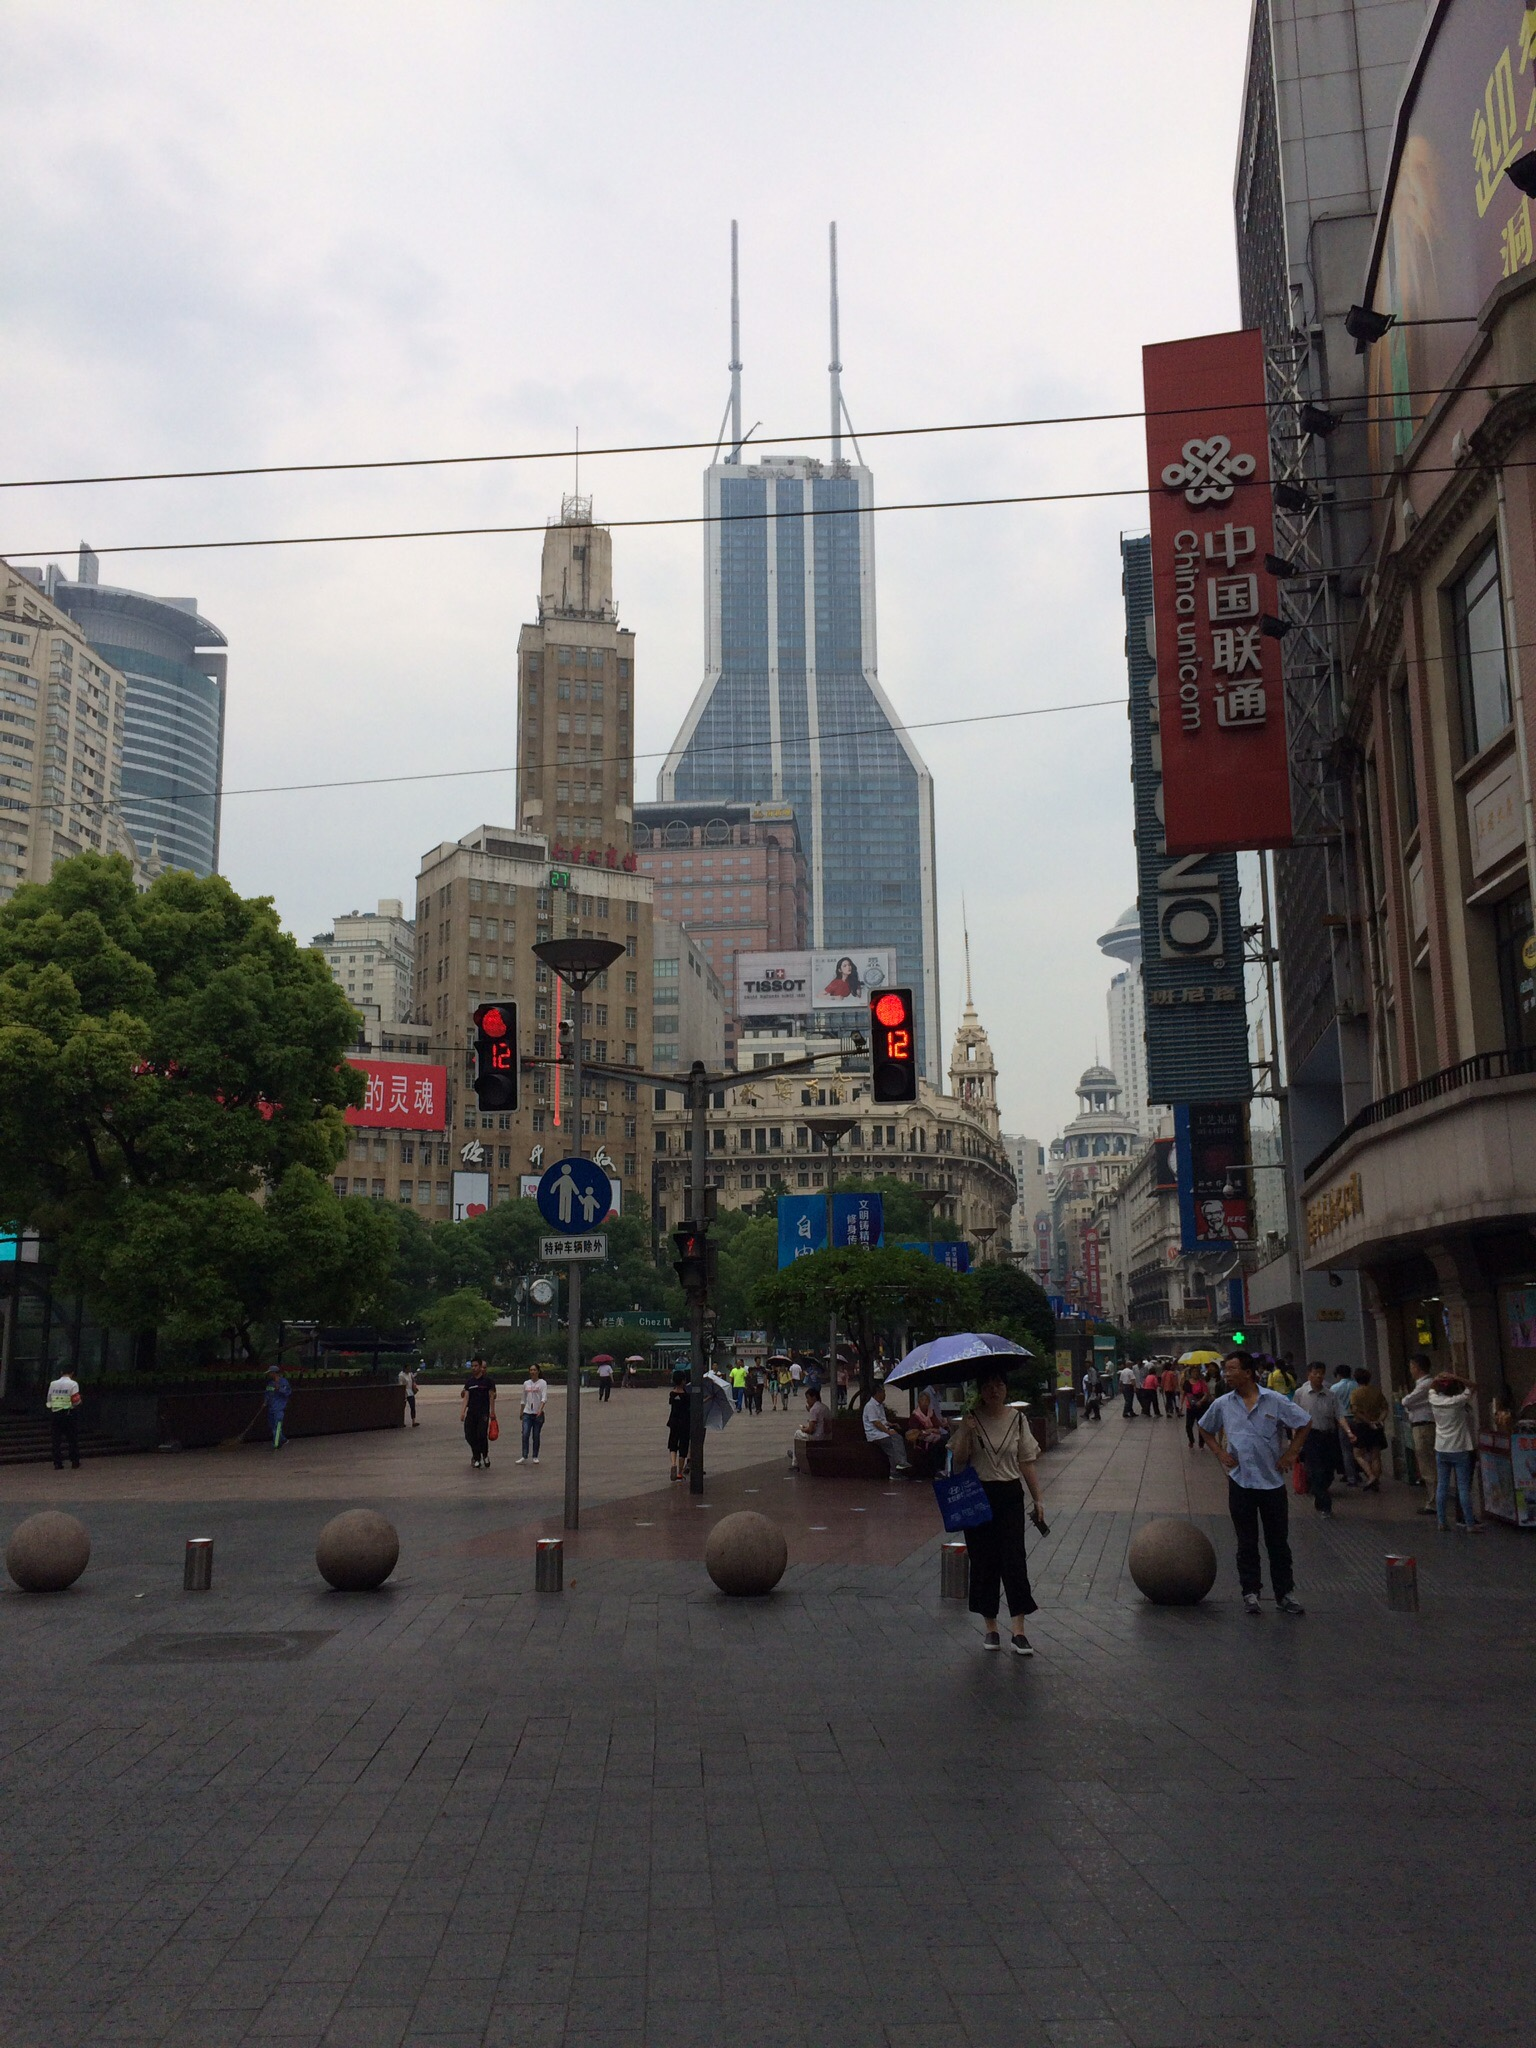 Walking down Nanjing Road in Shanghai, China.